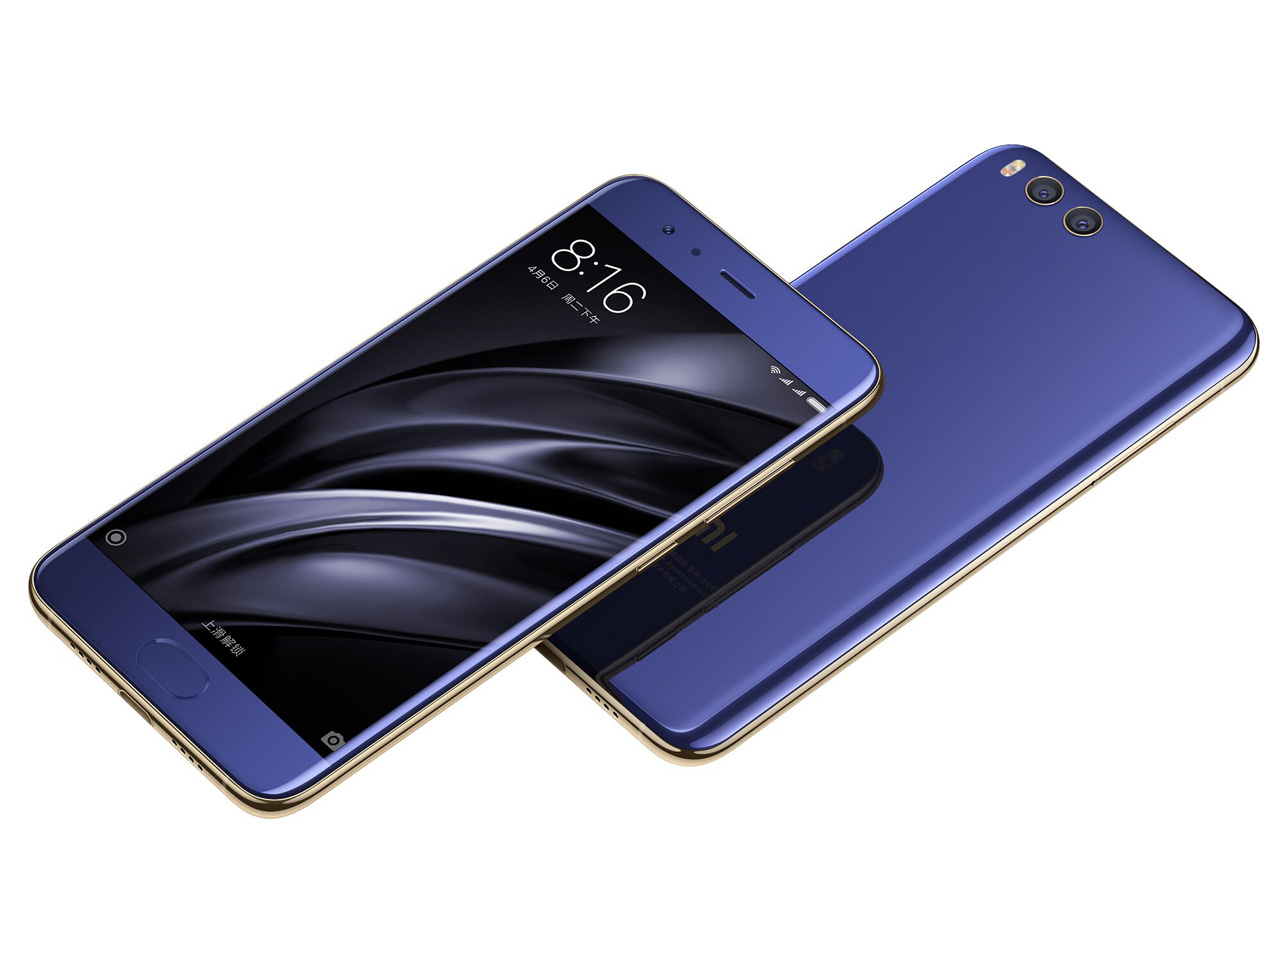 Xiaomi-Mi-6-is-now-official (2)